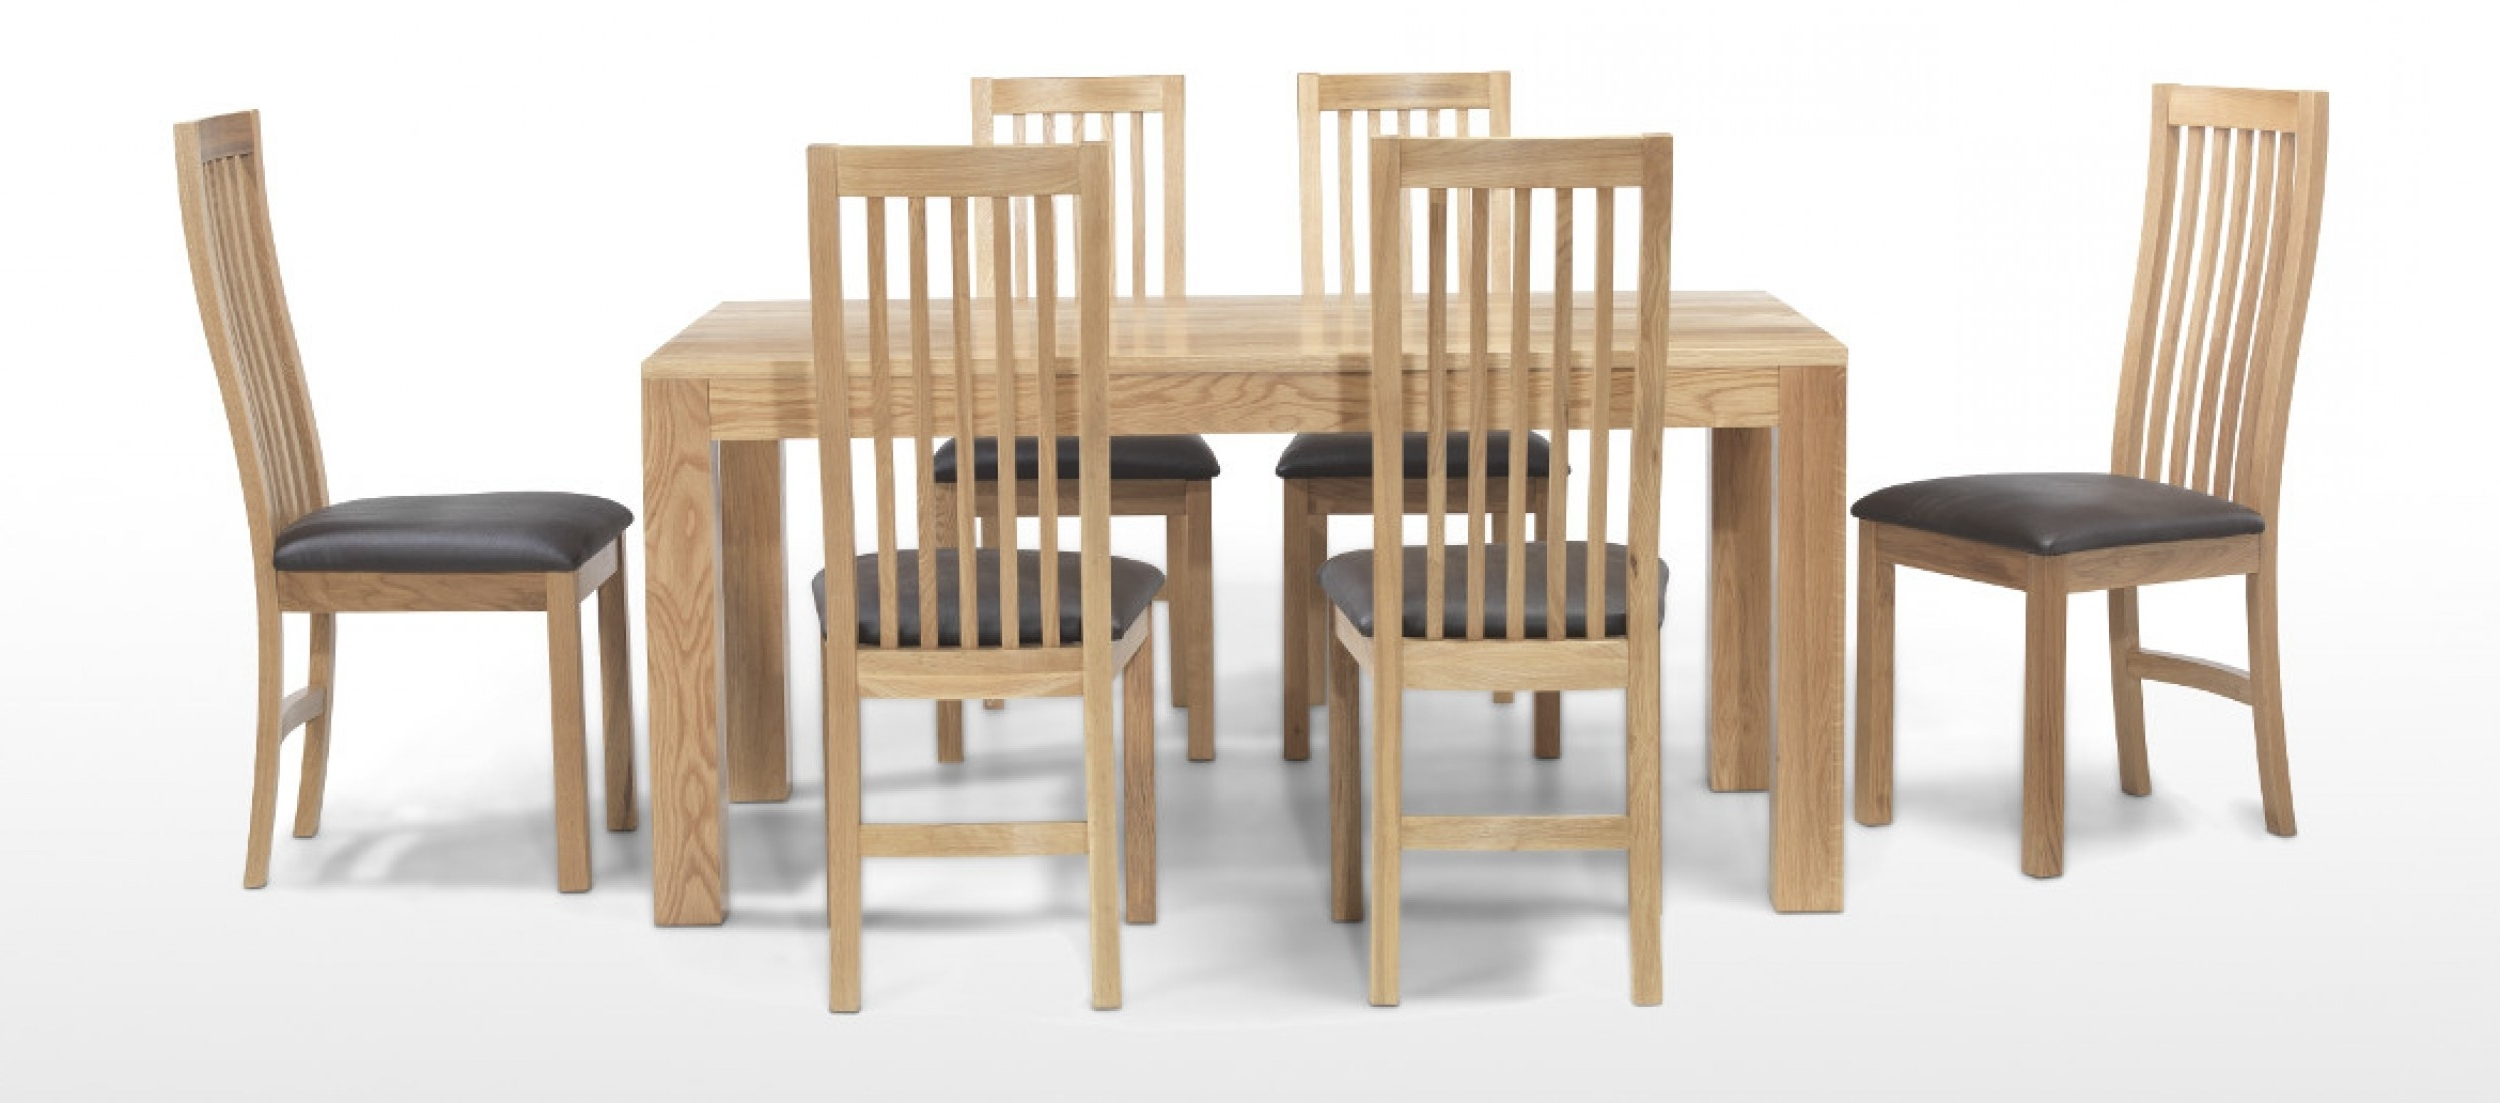 Quercus Living For Most Popular 6 Chair Dining Table Sets (Gallery 3 of 25)